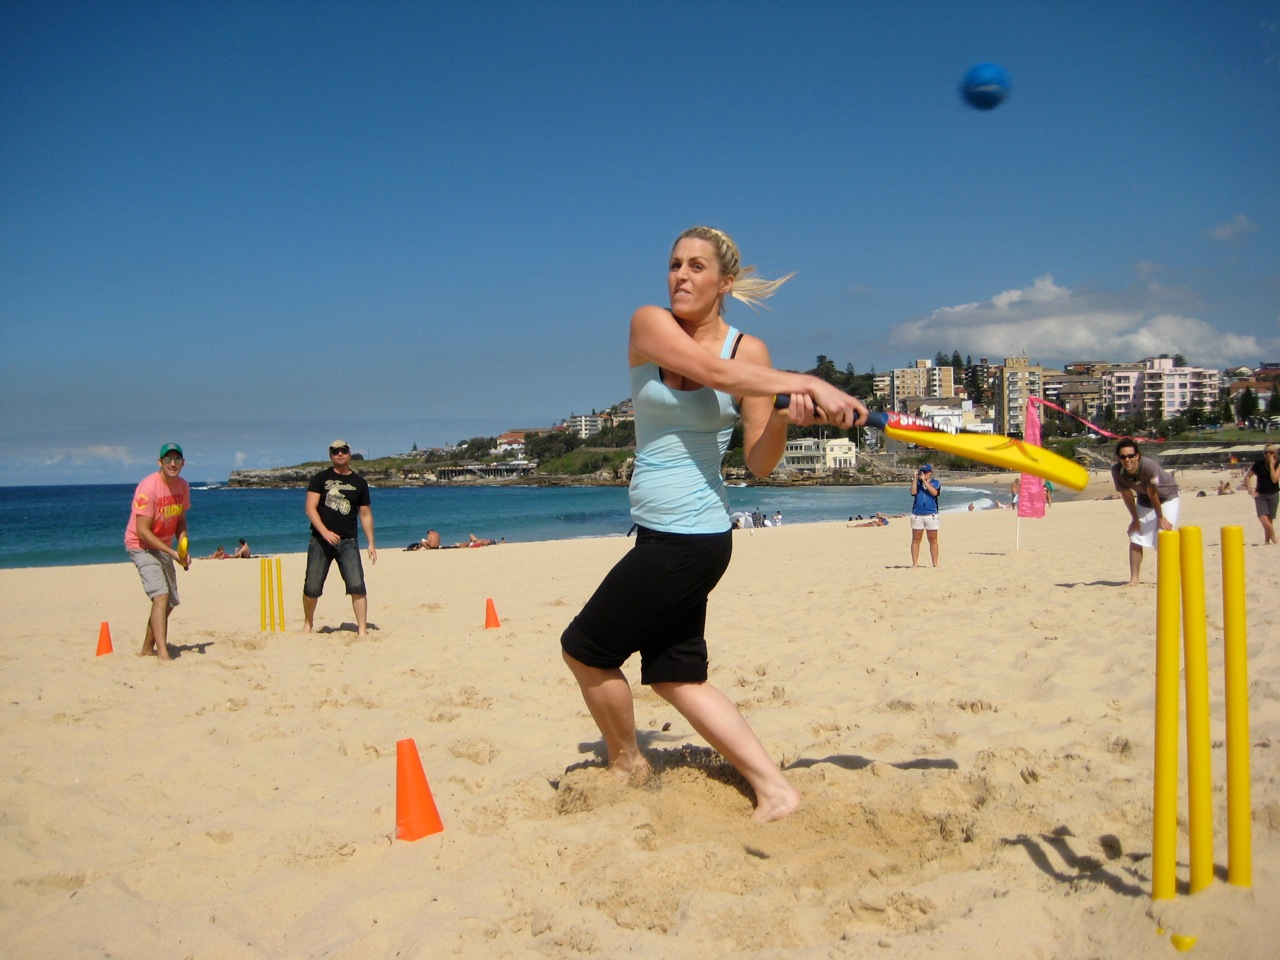 Beach Amazing Race- Team Building: